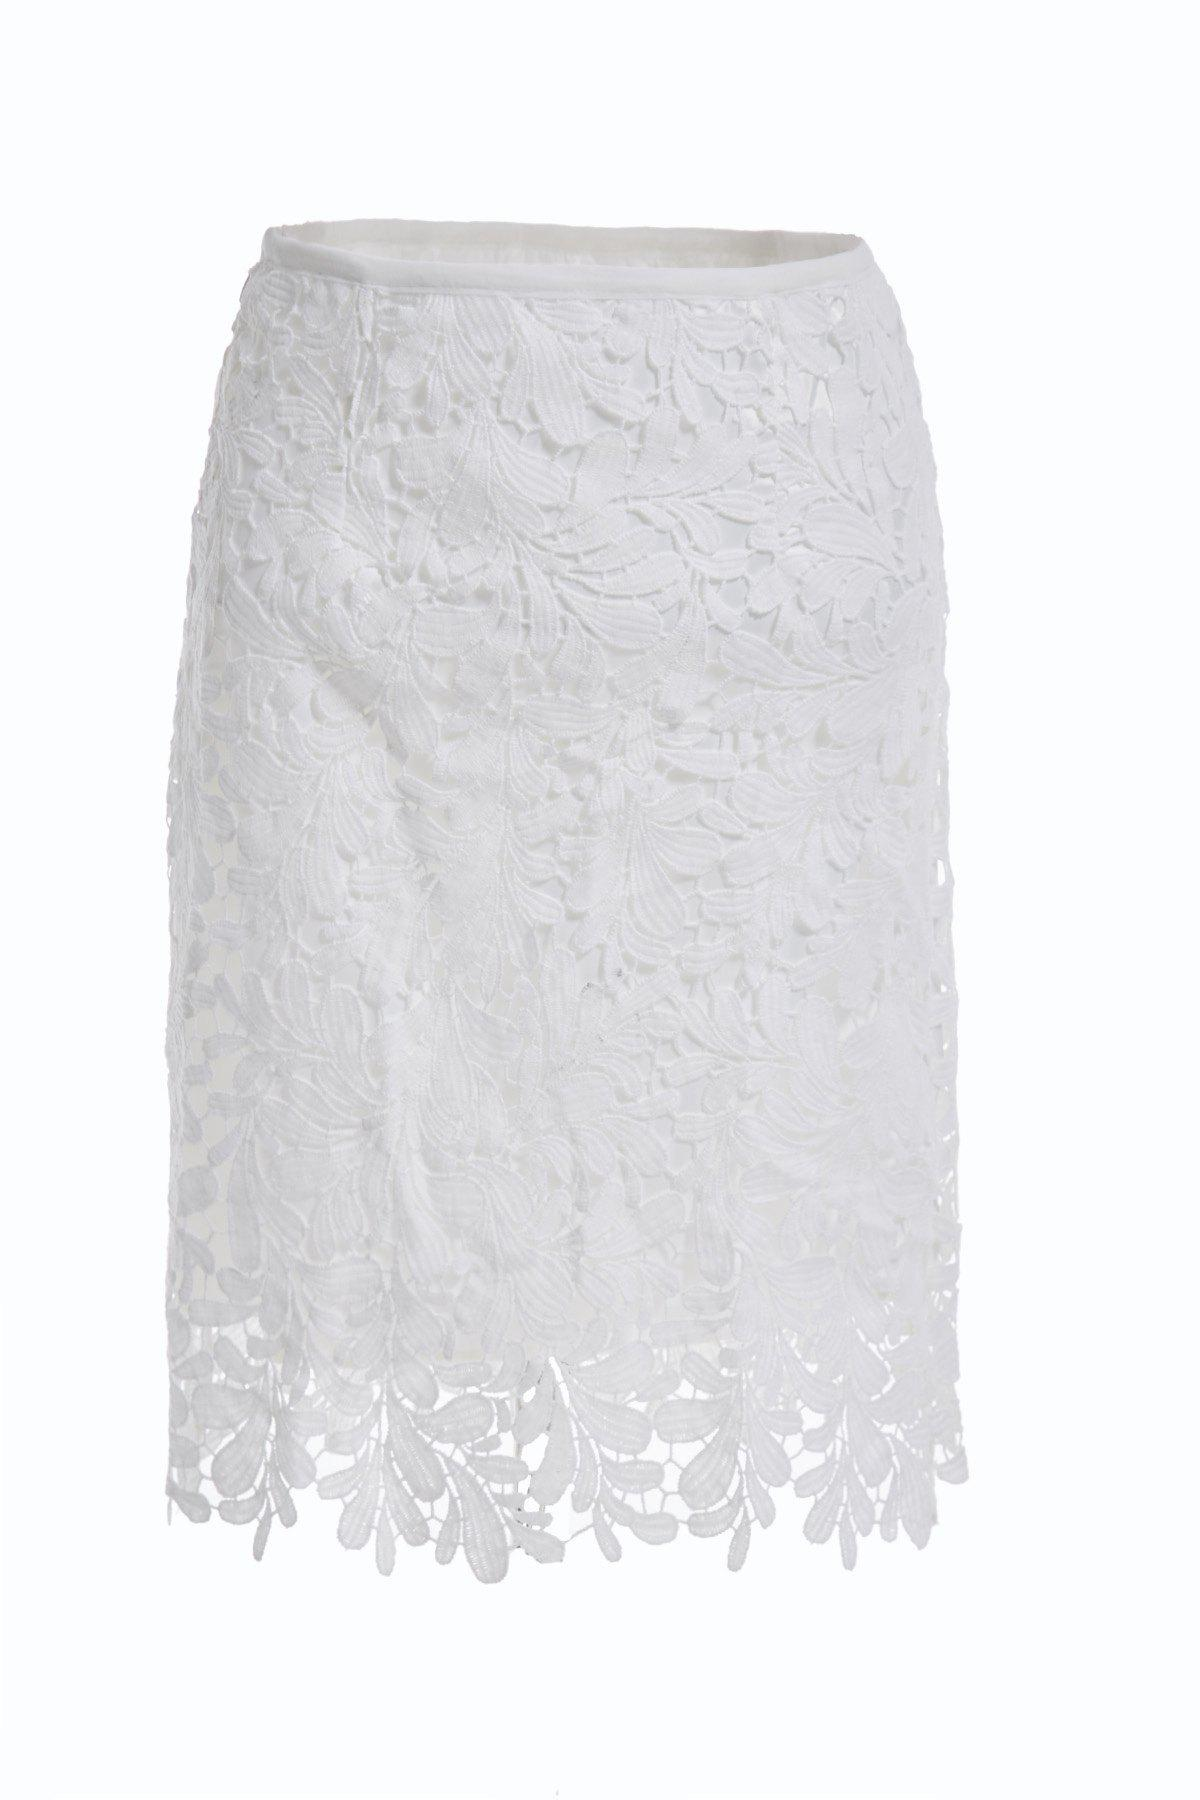 Elegant High Waist Cut Out Solid Color Lace Skirt For Women - WHITE M